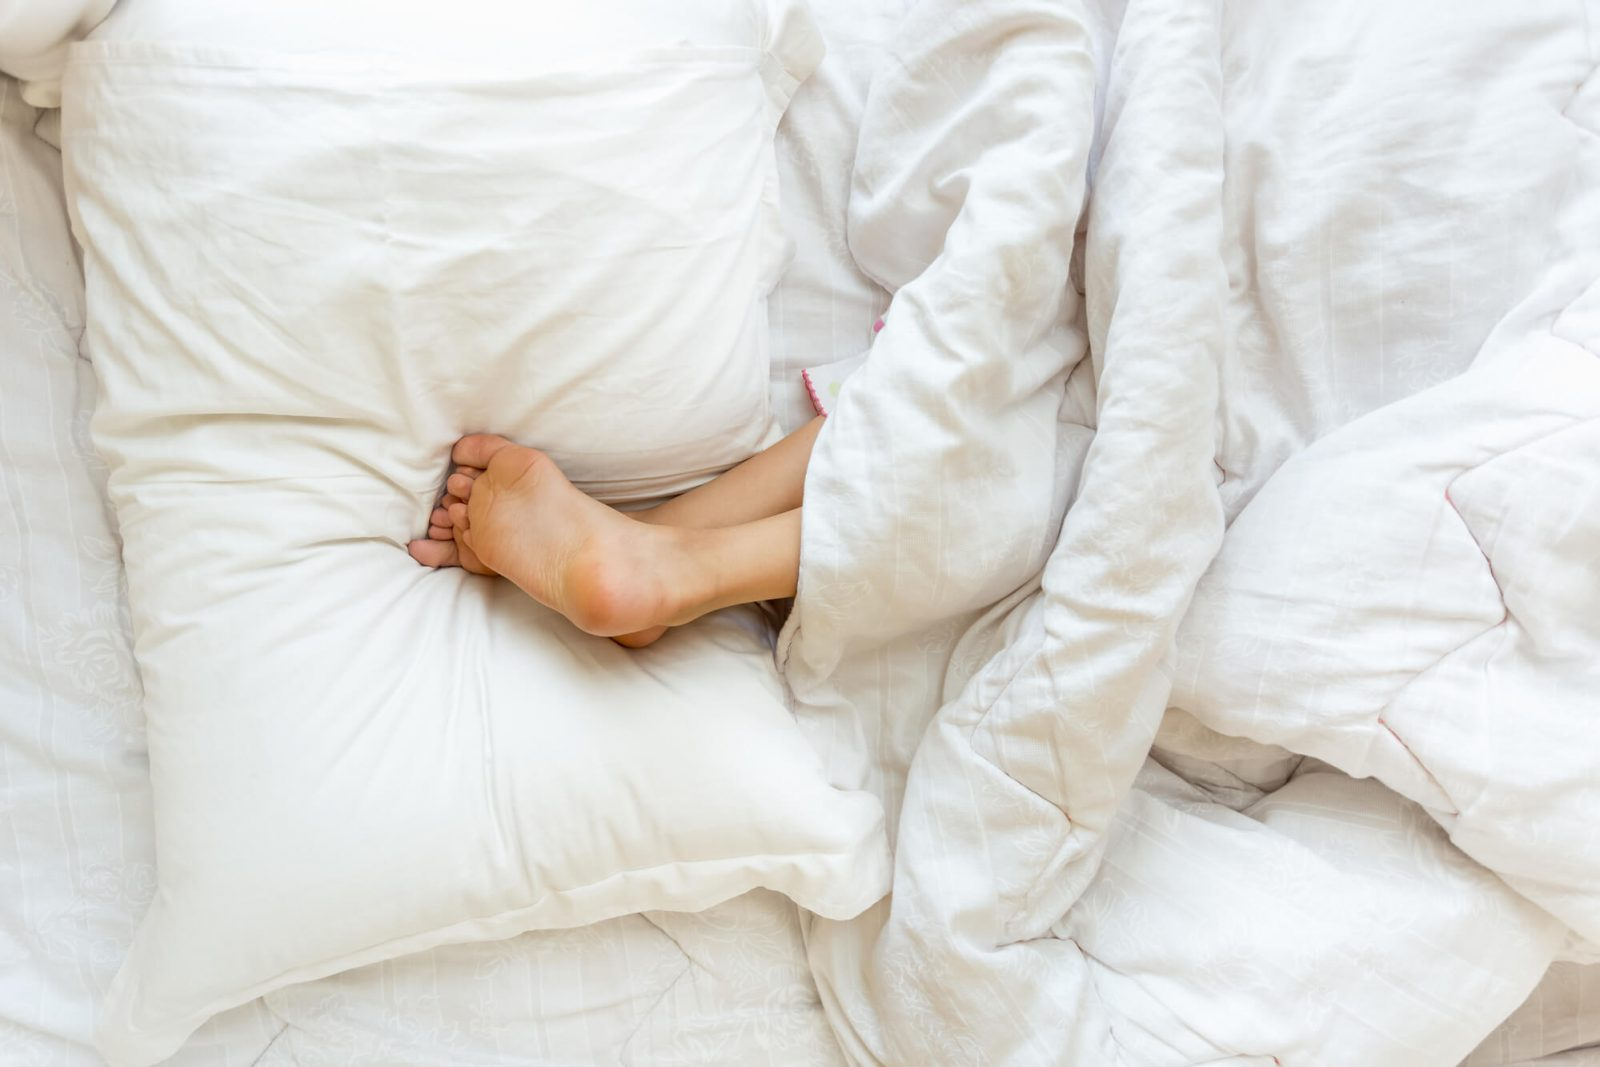 woman sleeping with legs elevated on pillow